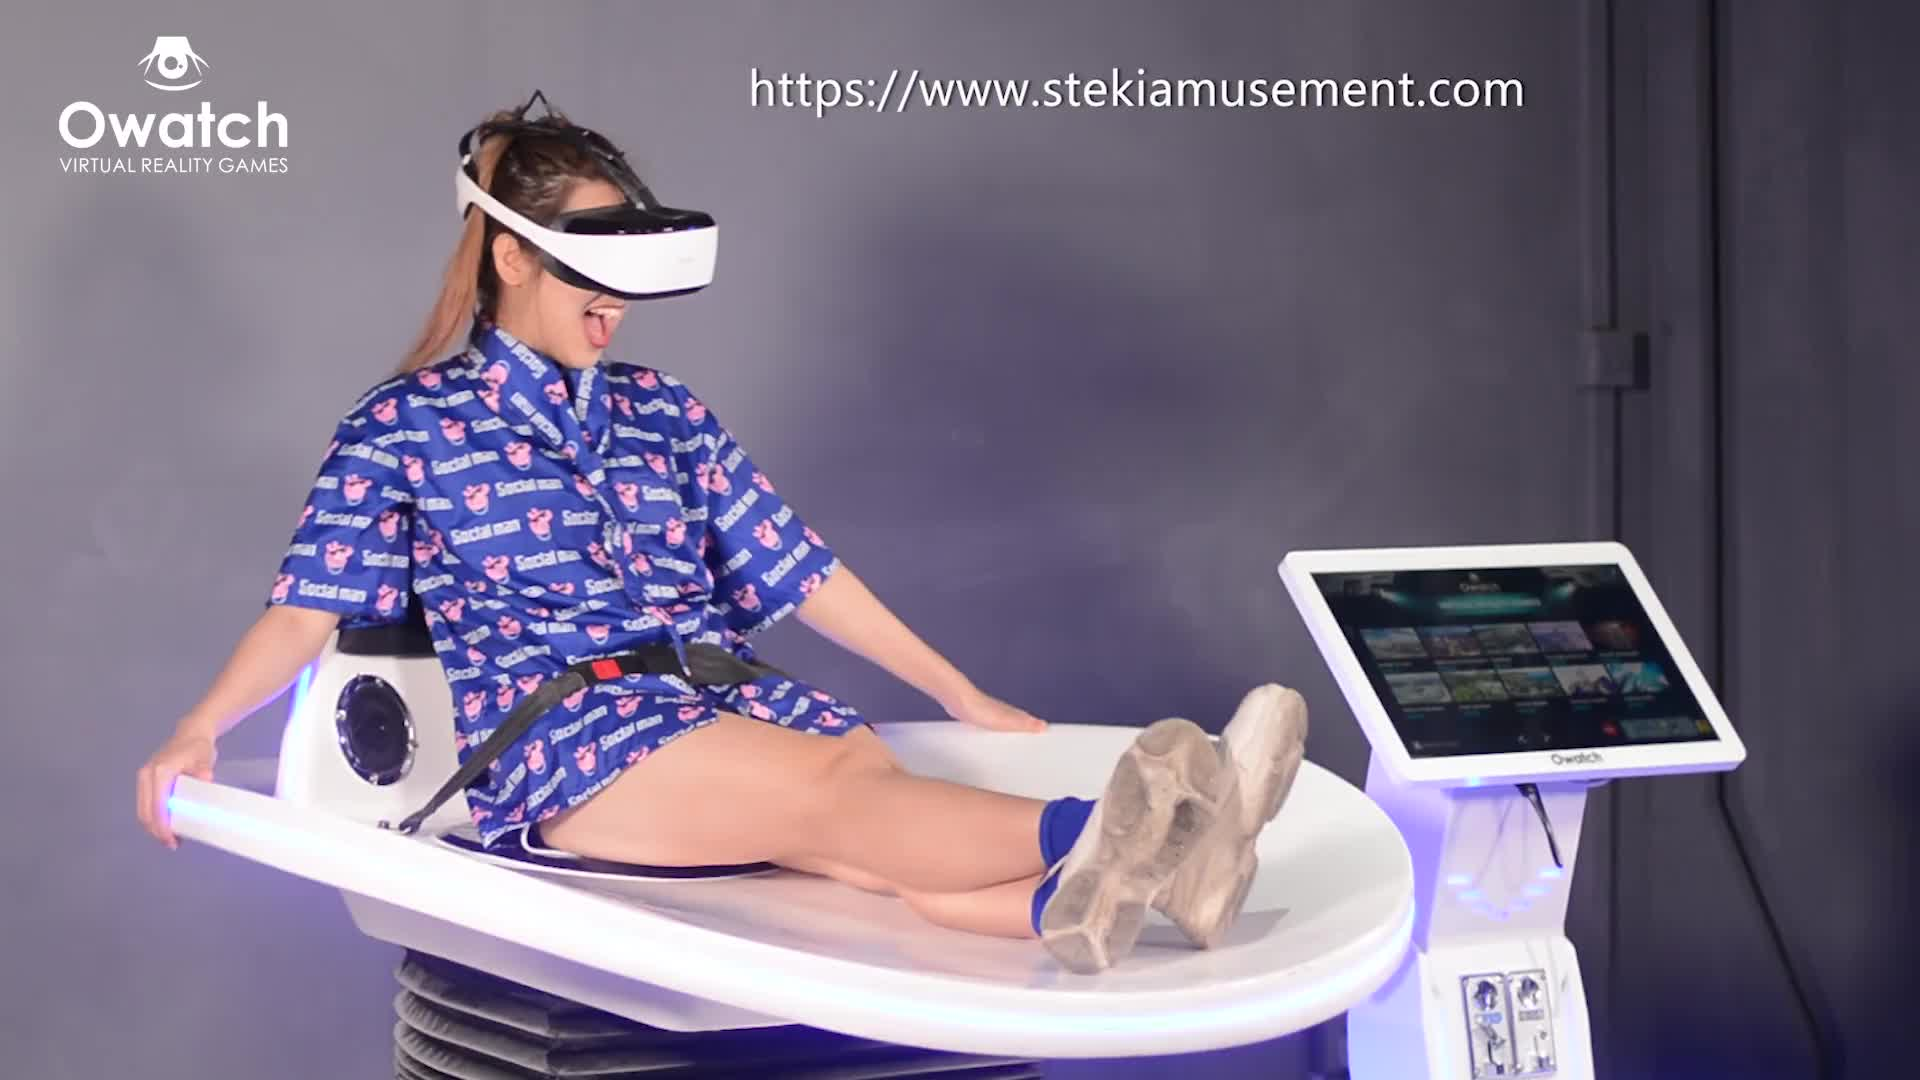 Arcade game center new products 9D VR simulated slide rides extreme virtual reality simulator